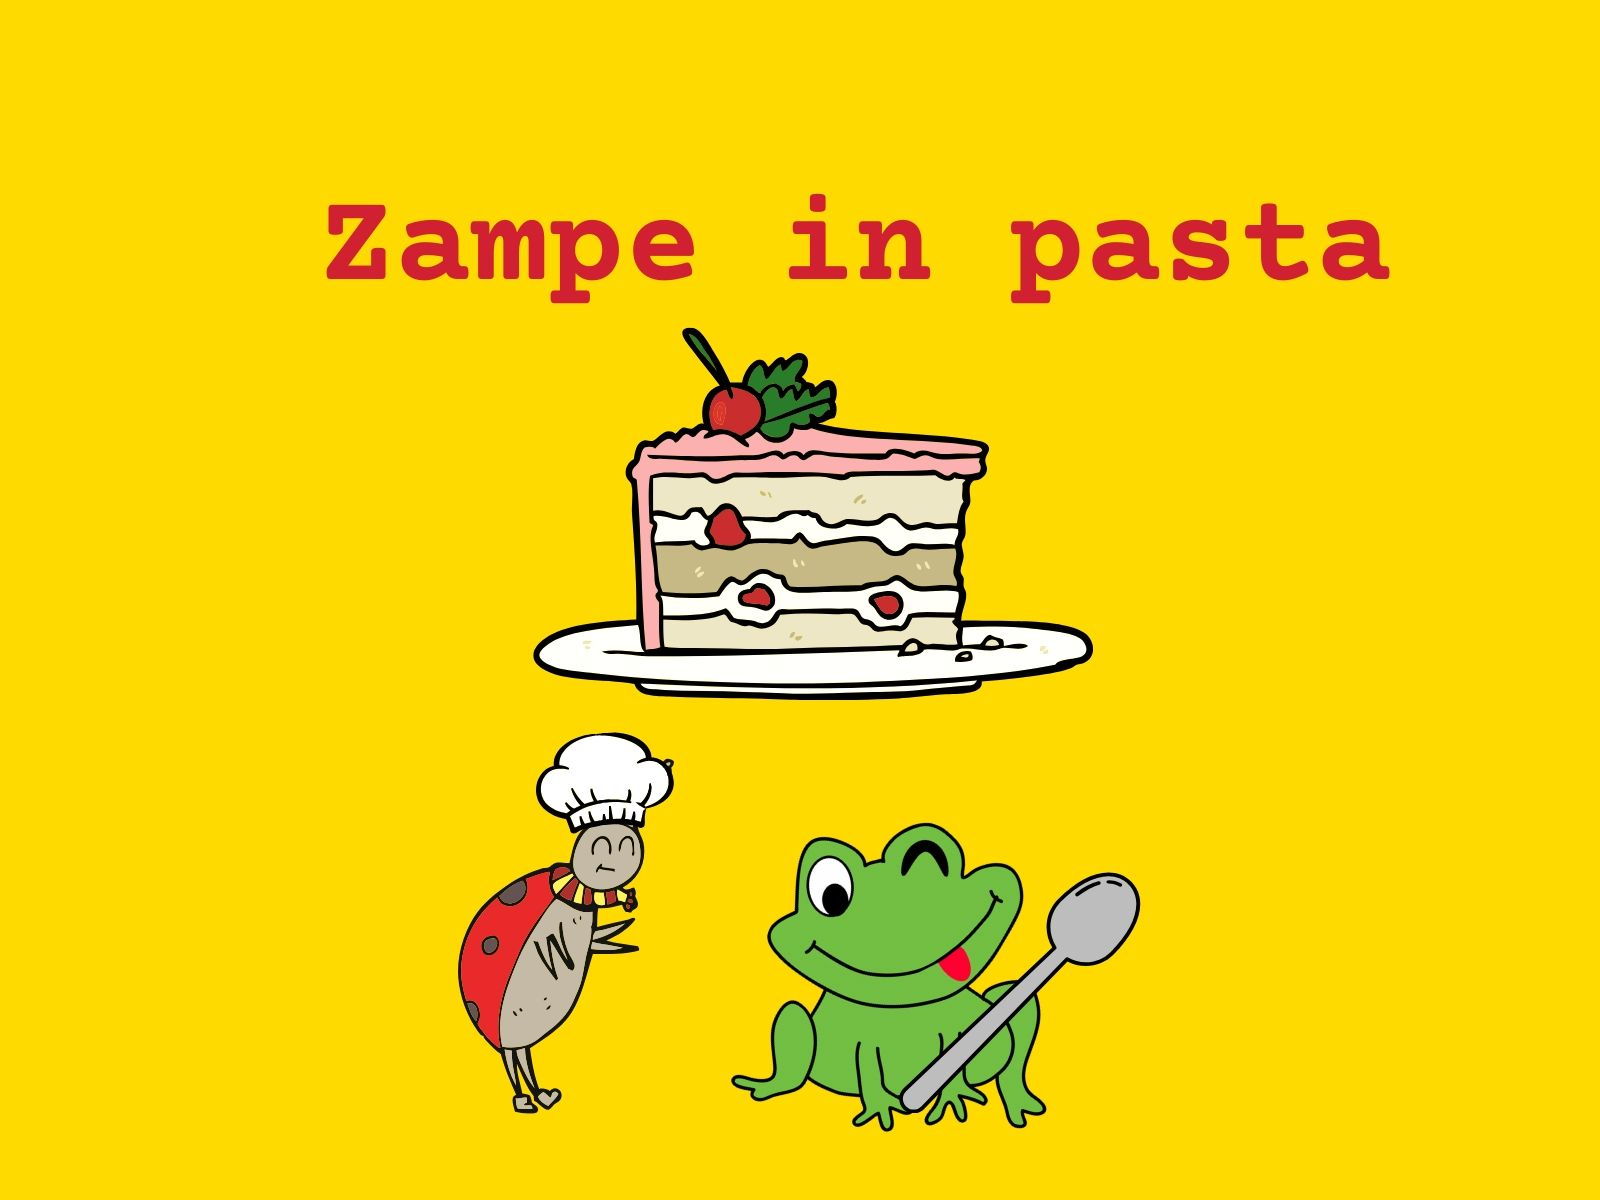 Seconda tappa: Zampe in pasta